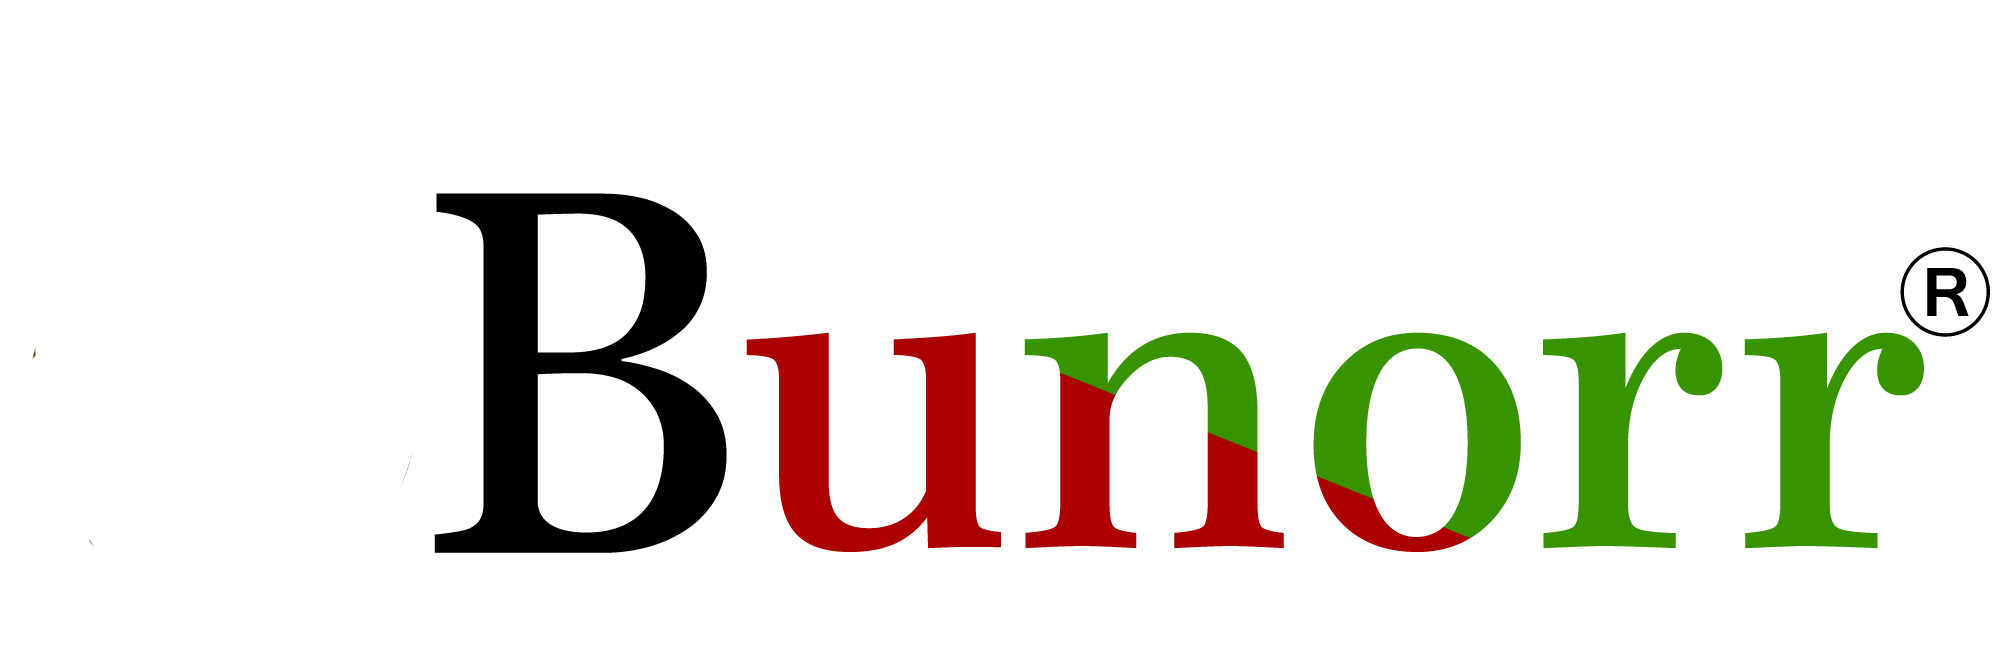 Bunorr Integrated Energy Limited's Company logo